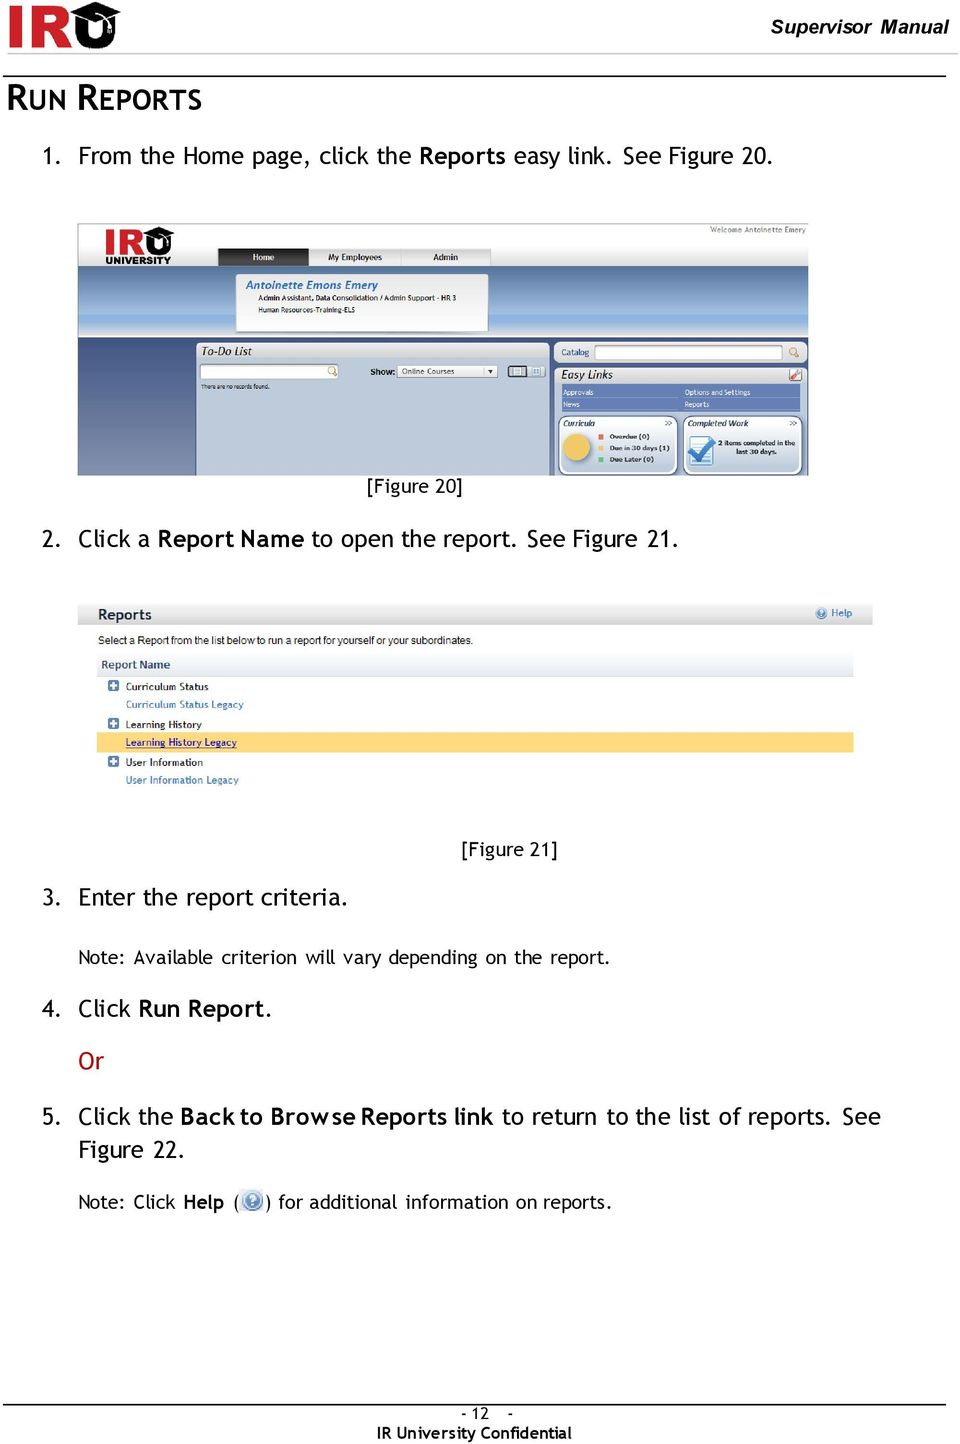 [Figure 21] Note: Available criterion will vary depending on the report. 4. Click Run Report. Or 5.